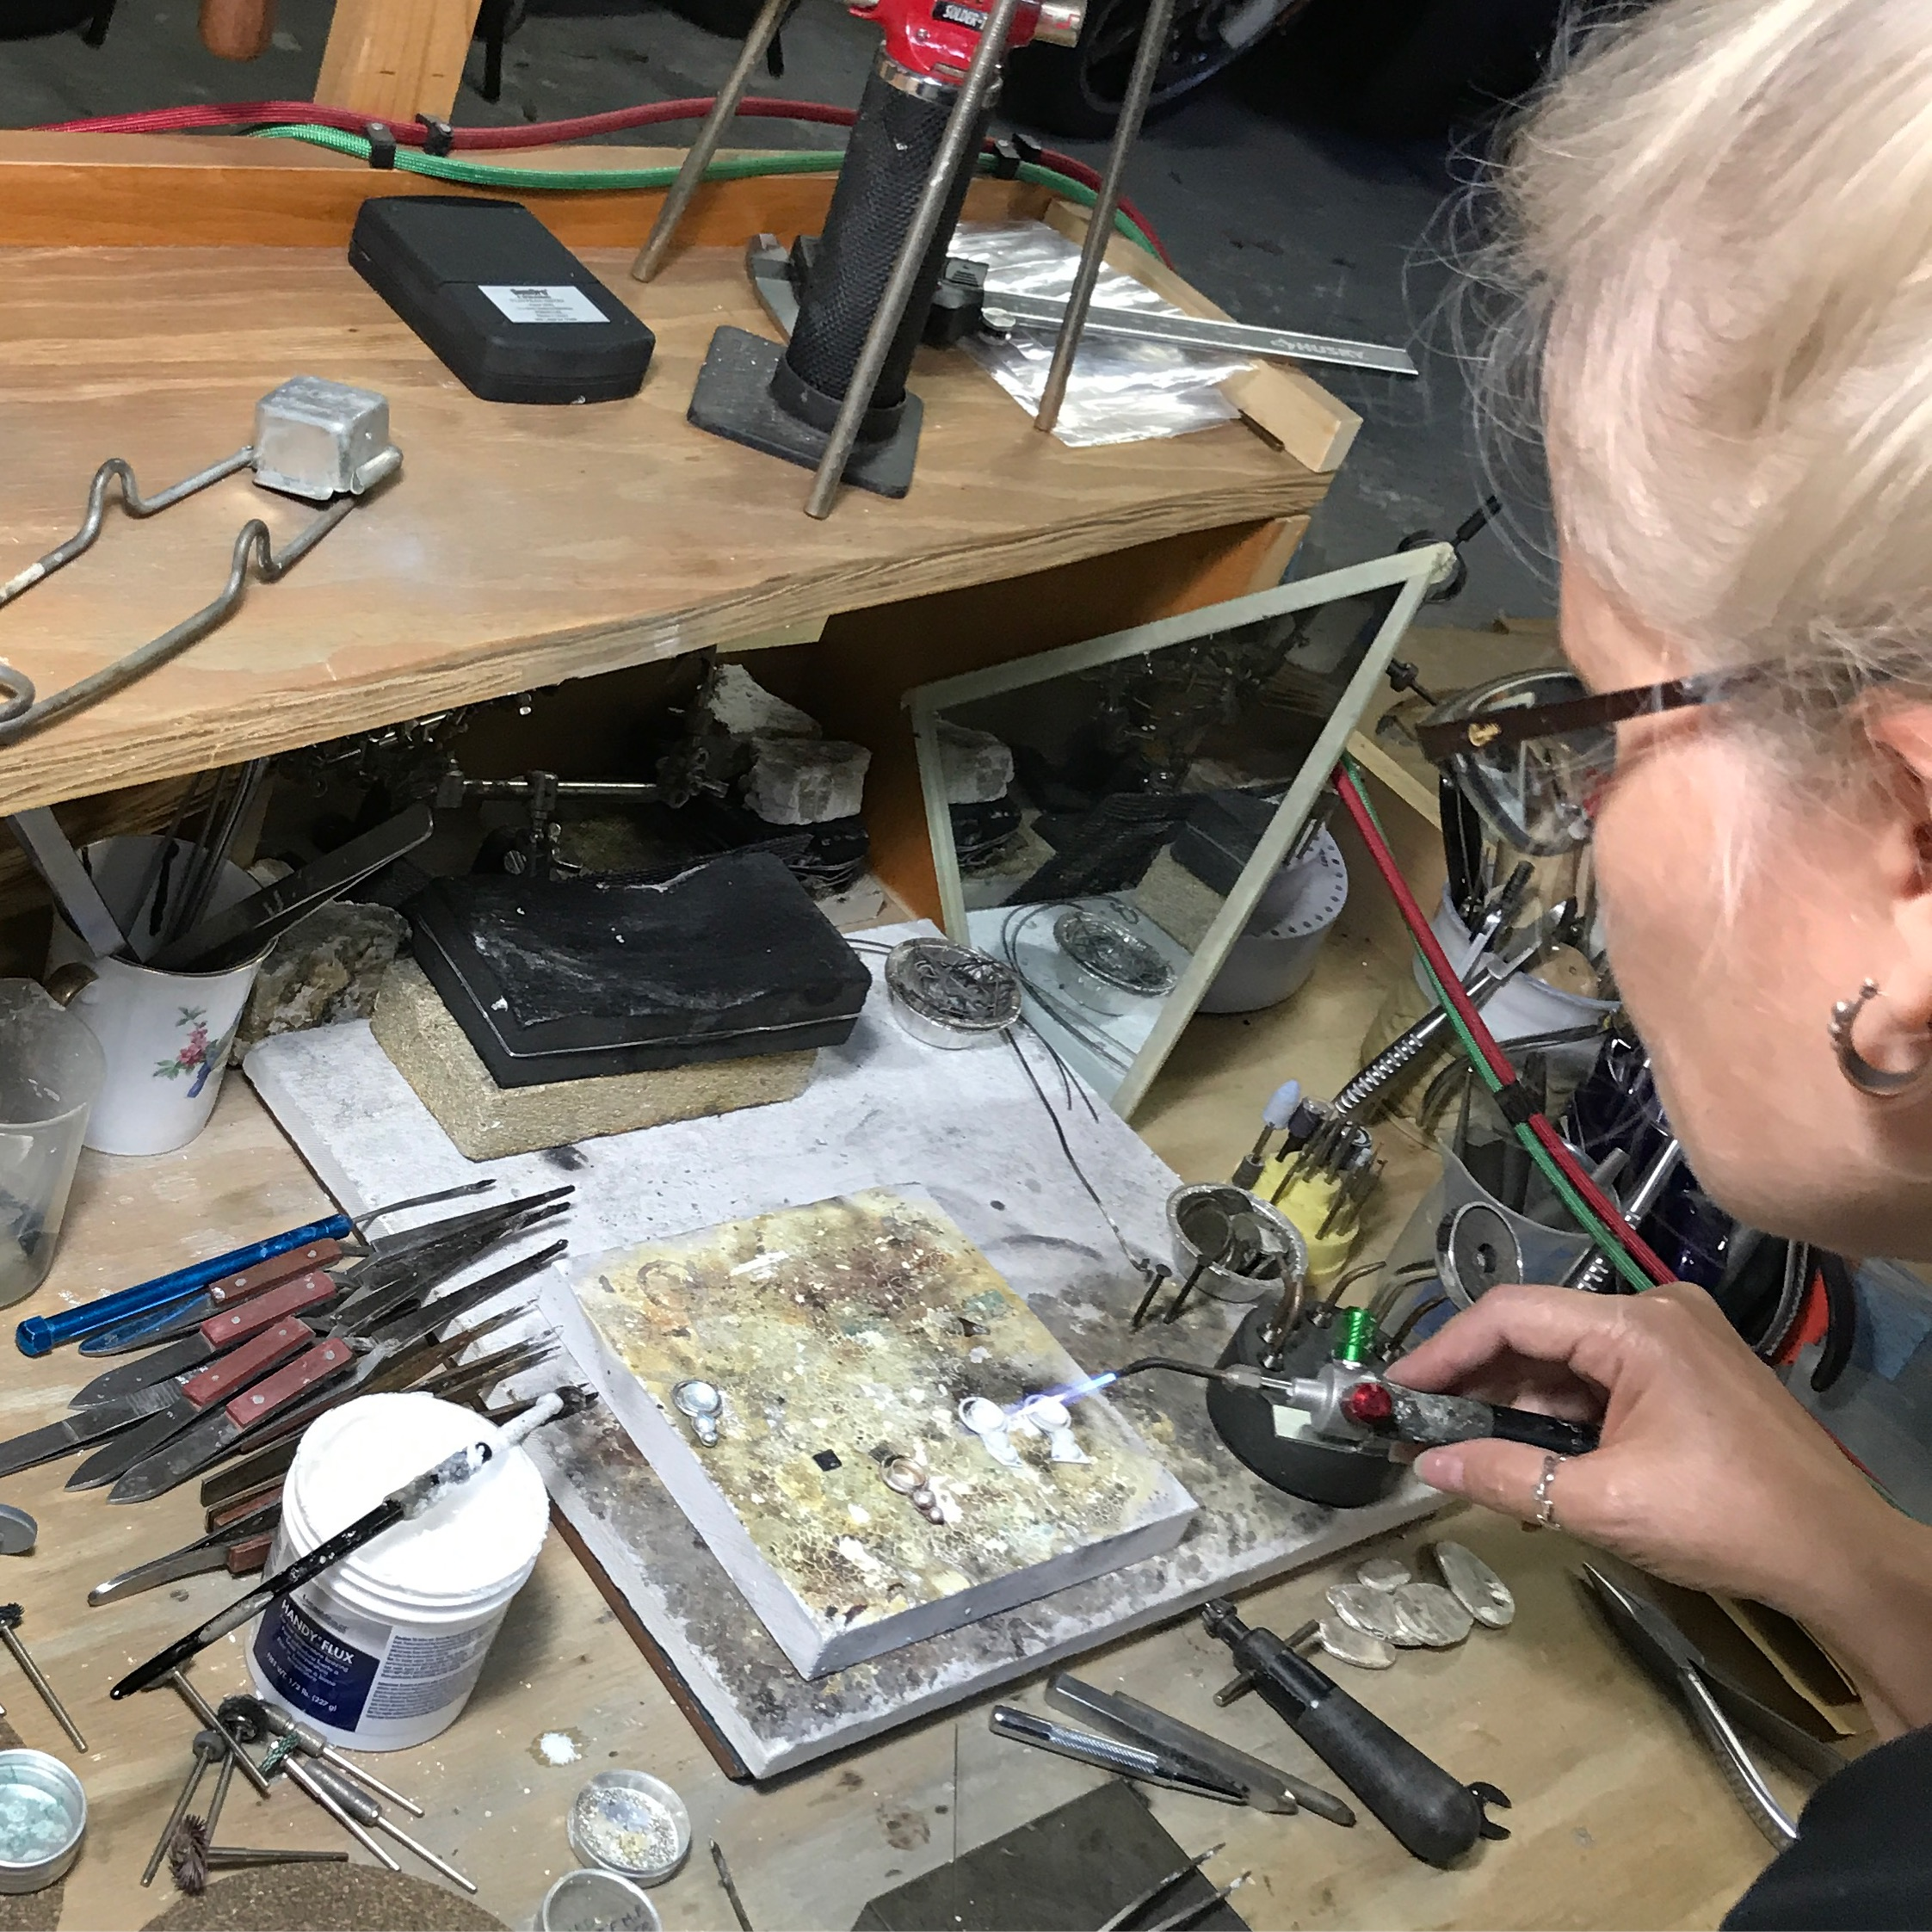 MosaicSmith artisan Linda Pieroth Smith at work in her shop.